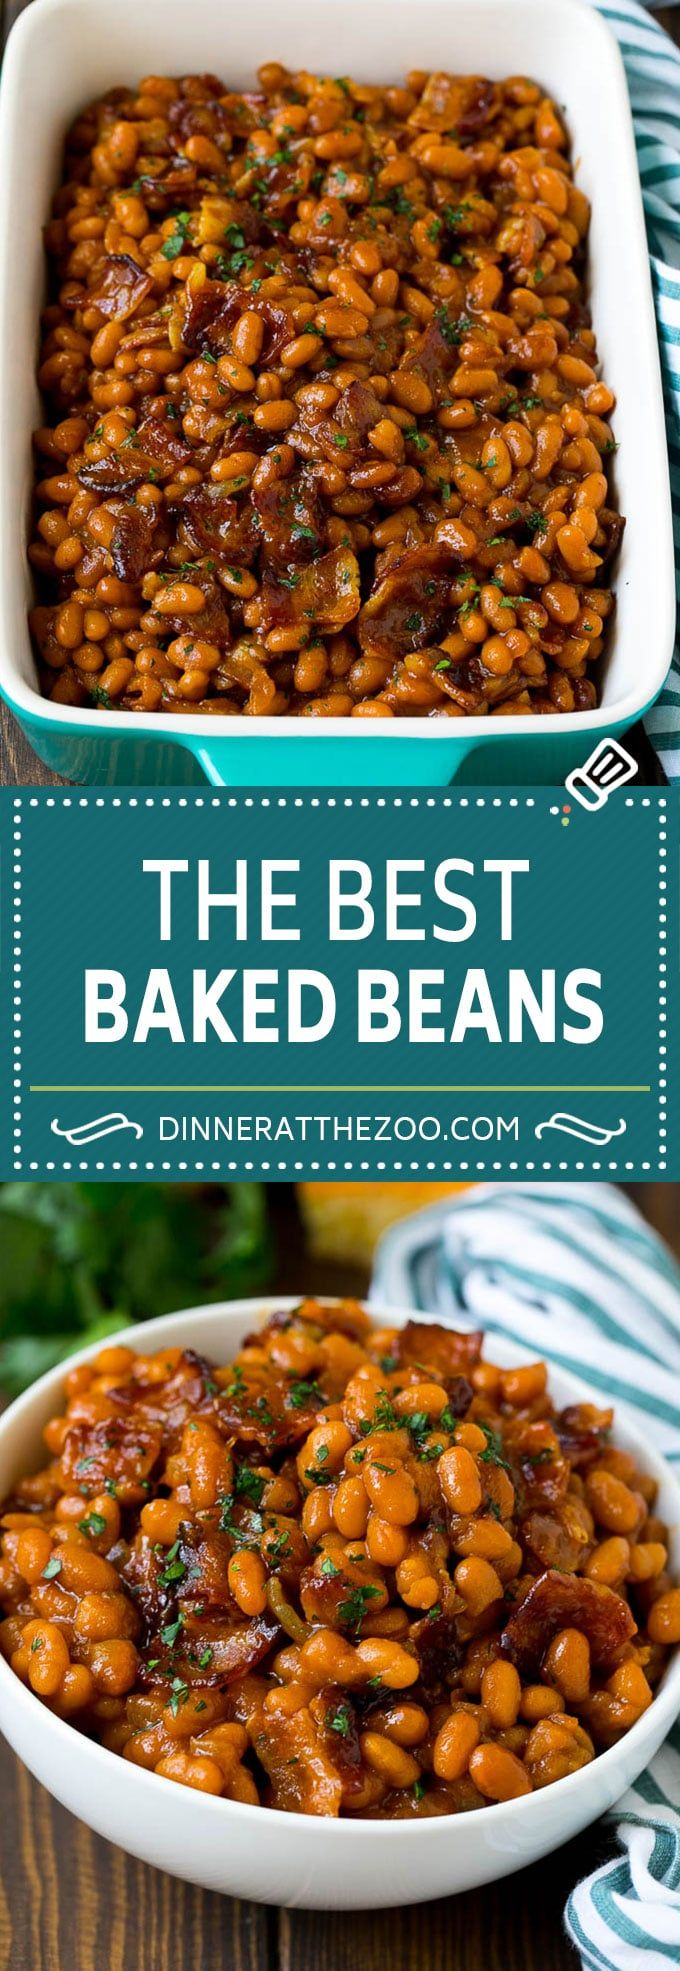 Baked Beans Recipe